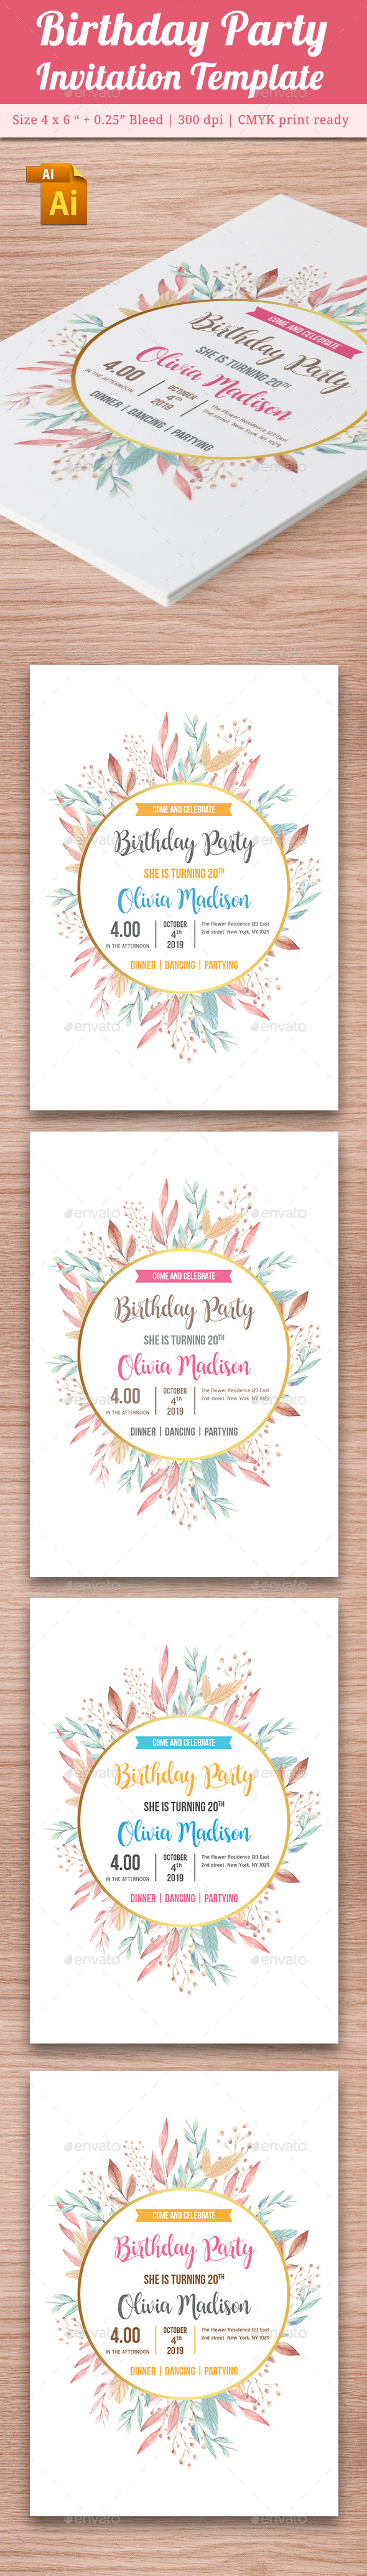 Birthday Party Invitation Template - Vol . 14 - Cards & Invites Print Templates